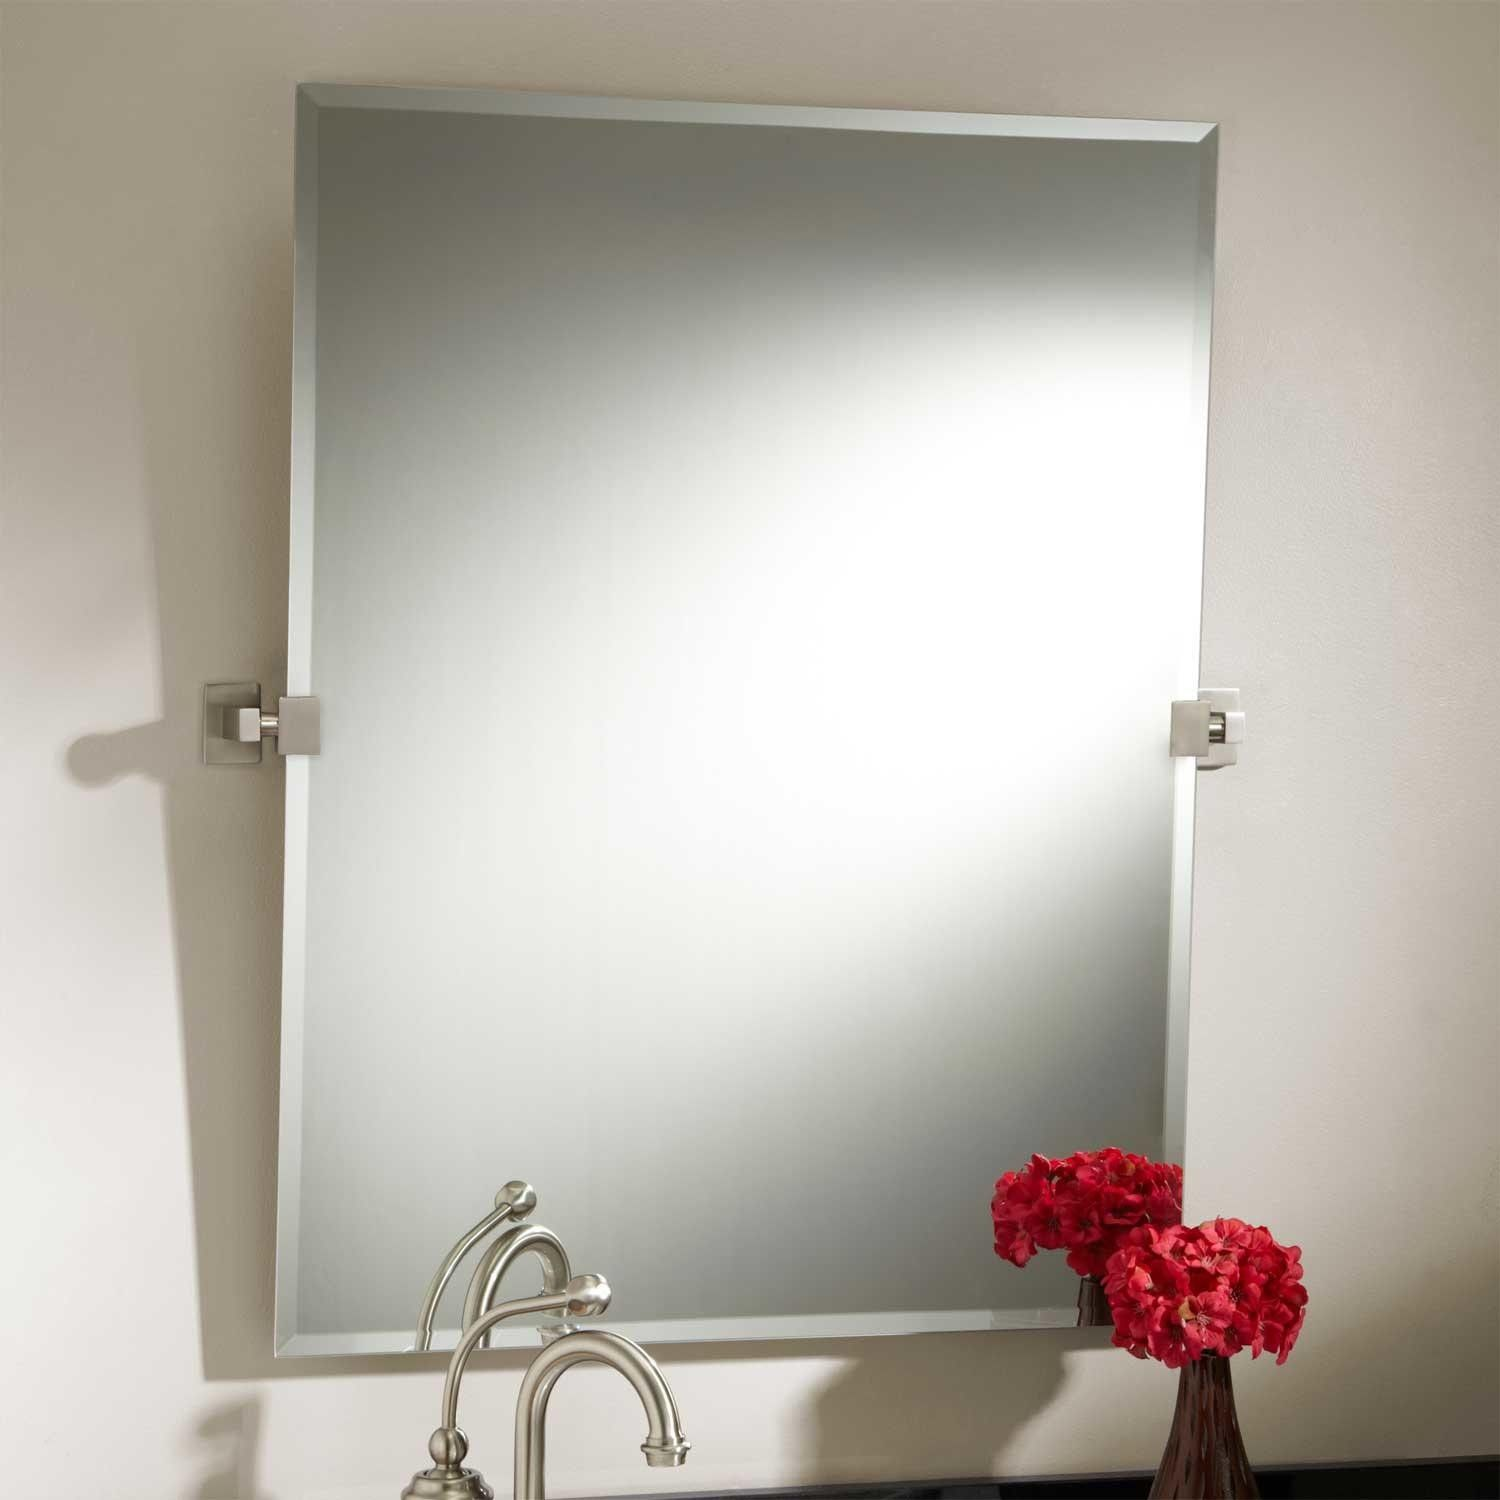 luxury bathroom pivot mirror ideas-Contemporary Bathroom Pivot Mirror Layout